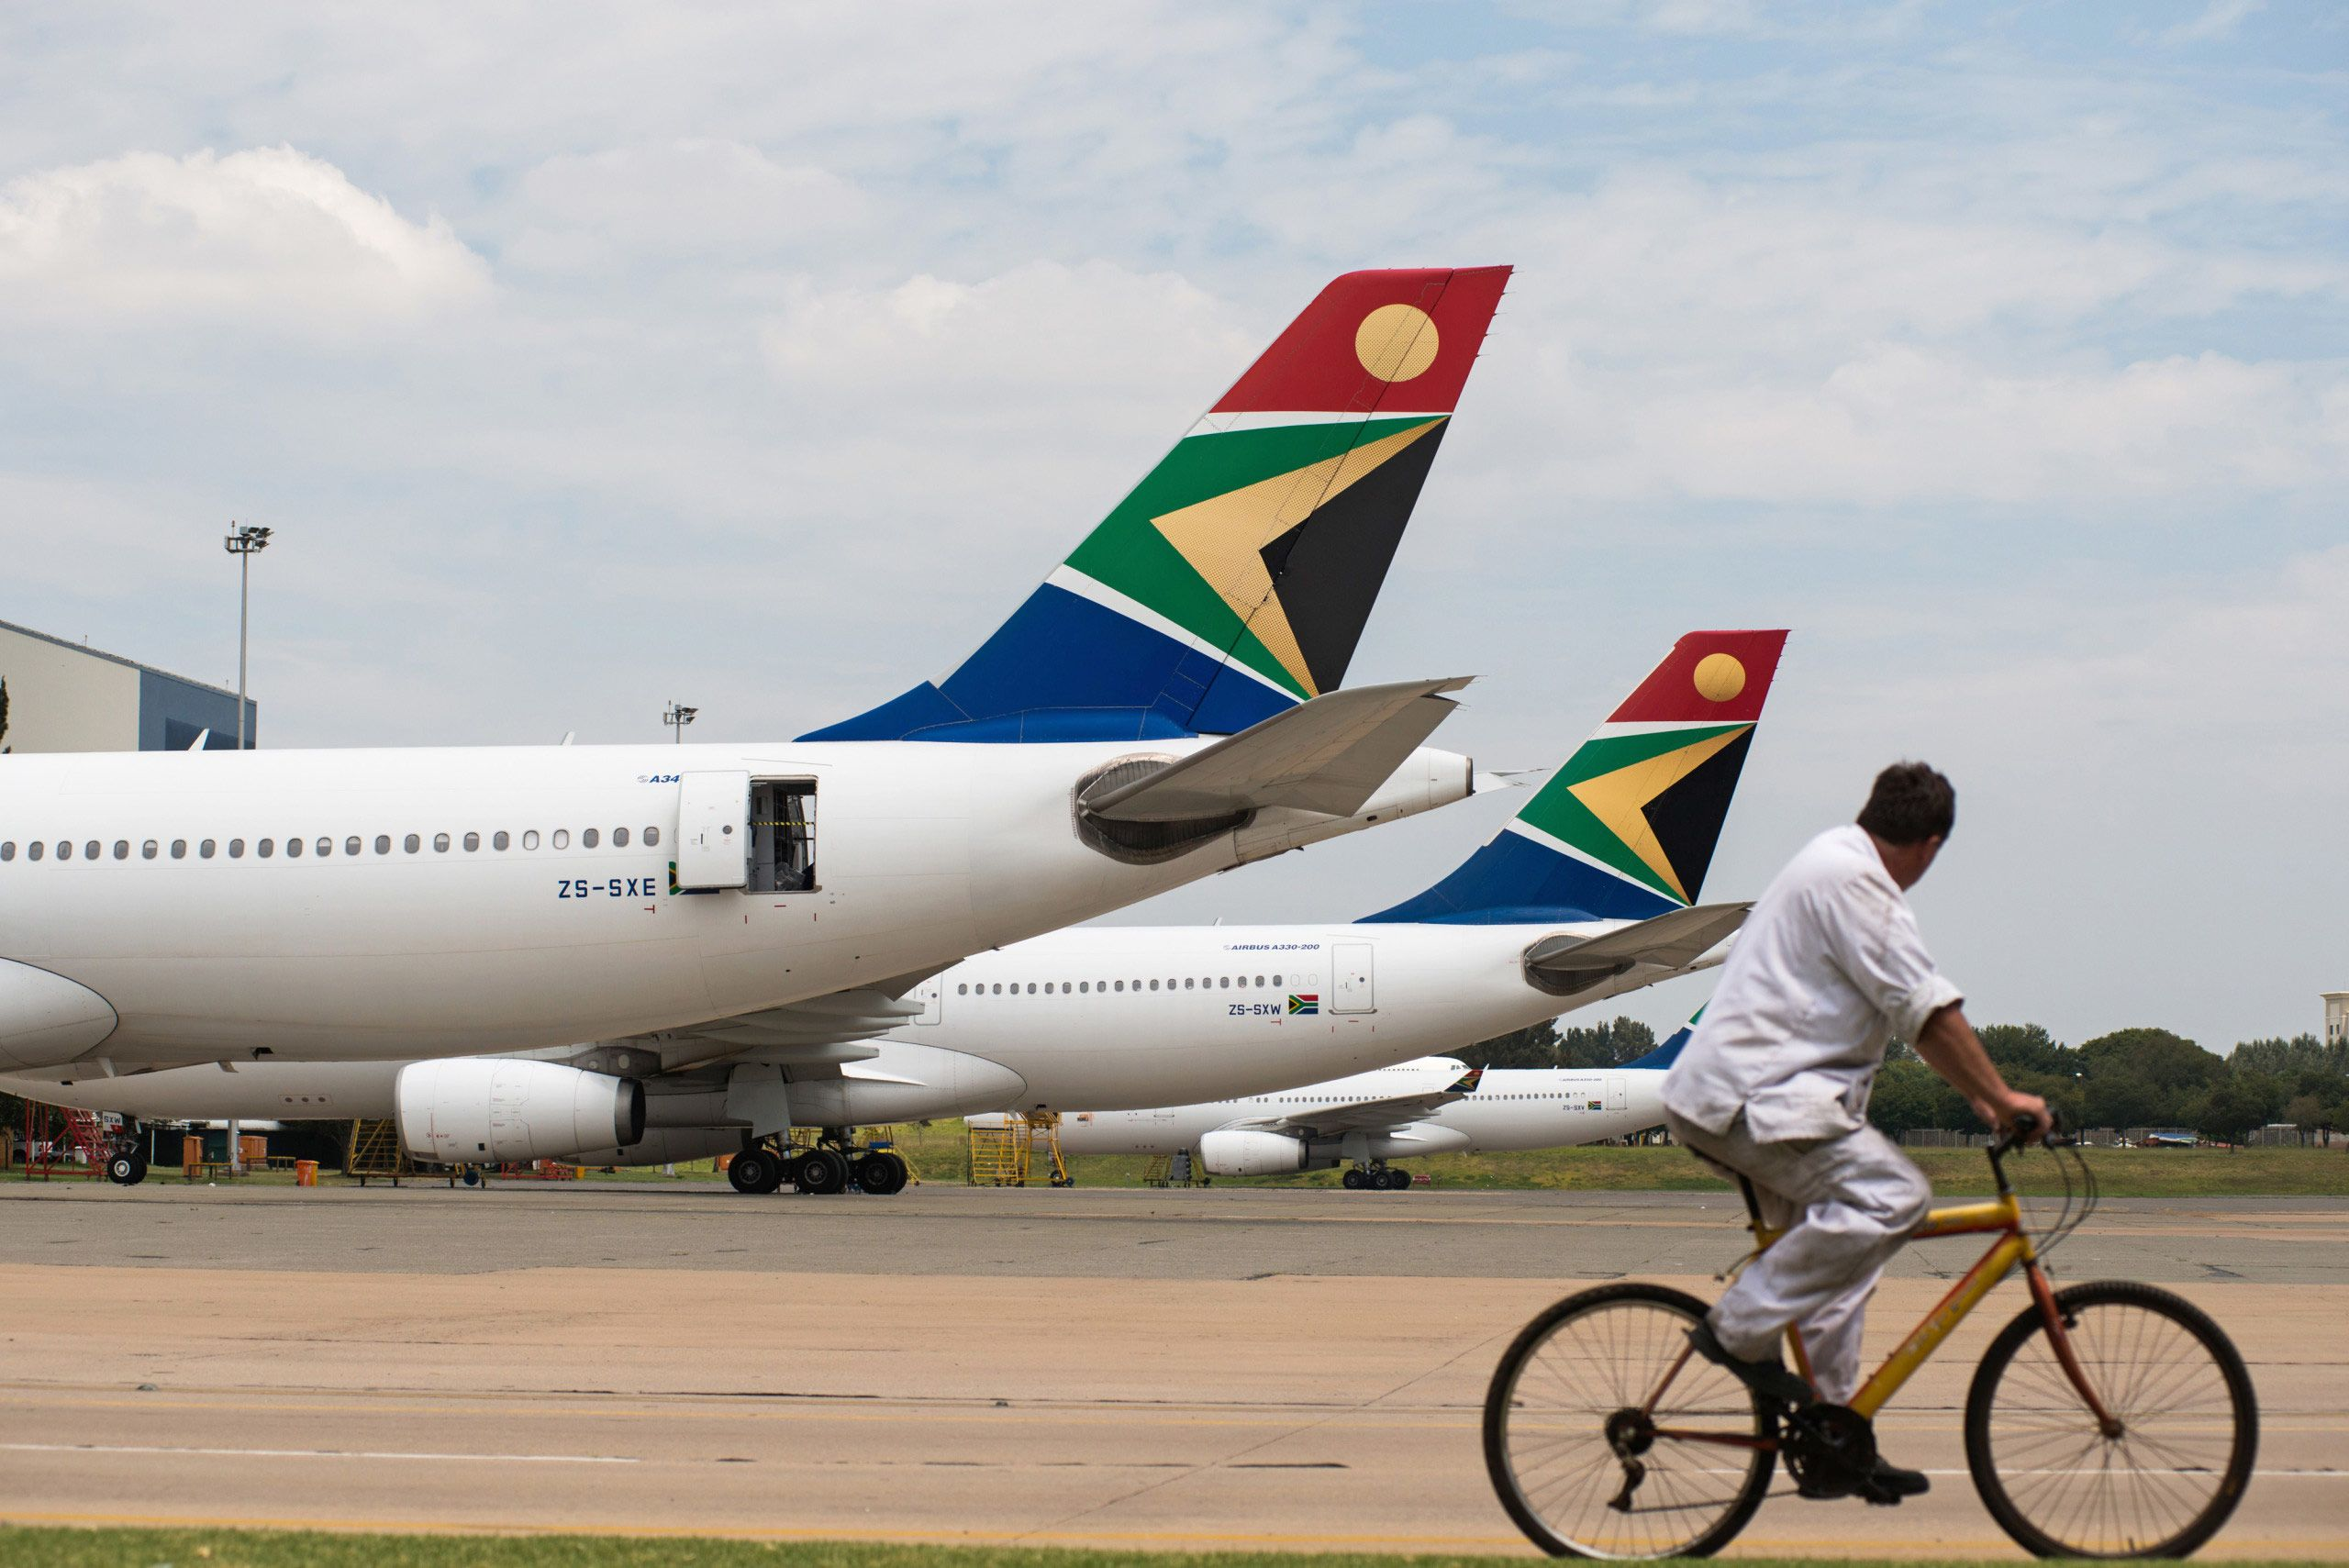 State Airline Asked South Africa for $772 Million, Minister Says